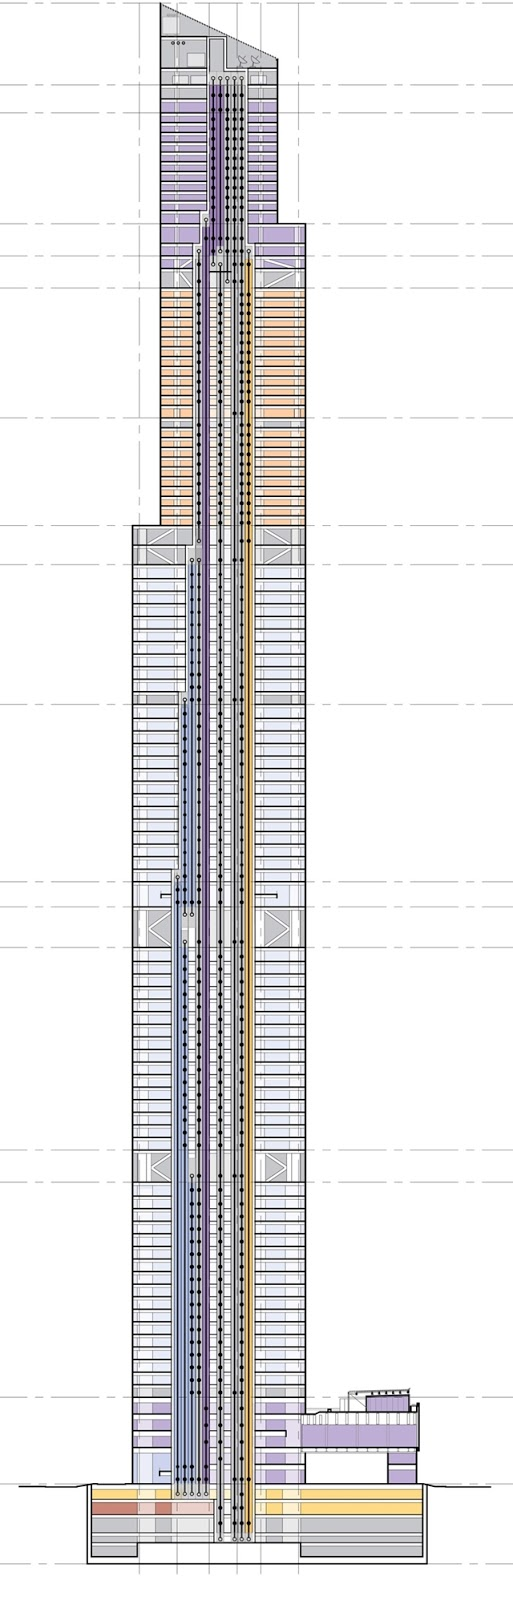 Diagram of The Chow Tai Fook skyscraper showing floors and elevators through the building